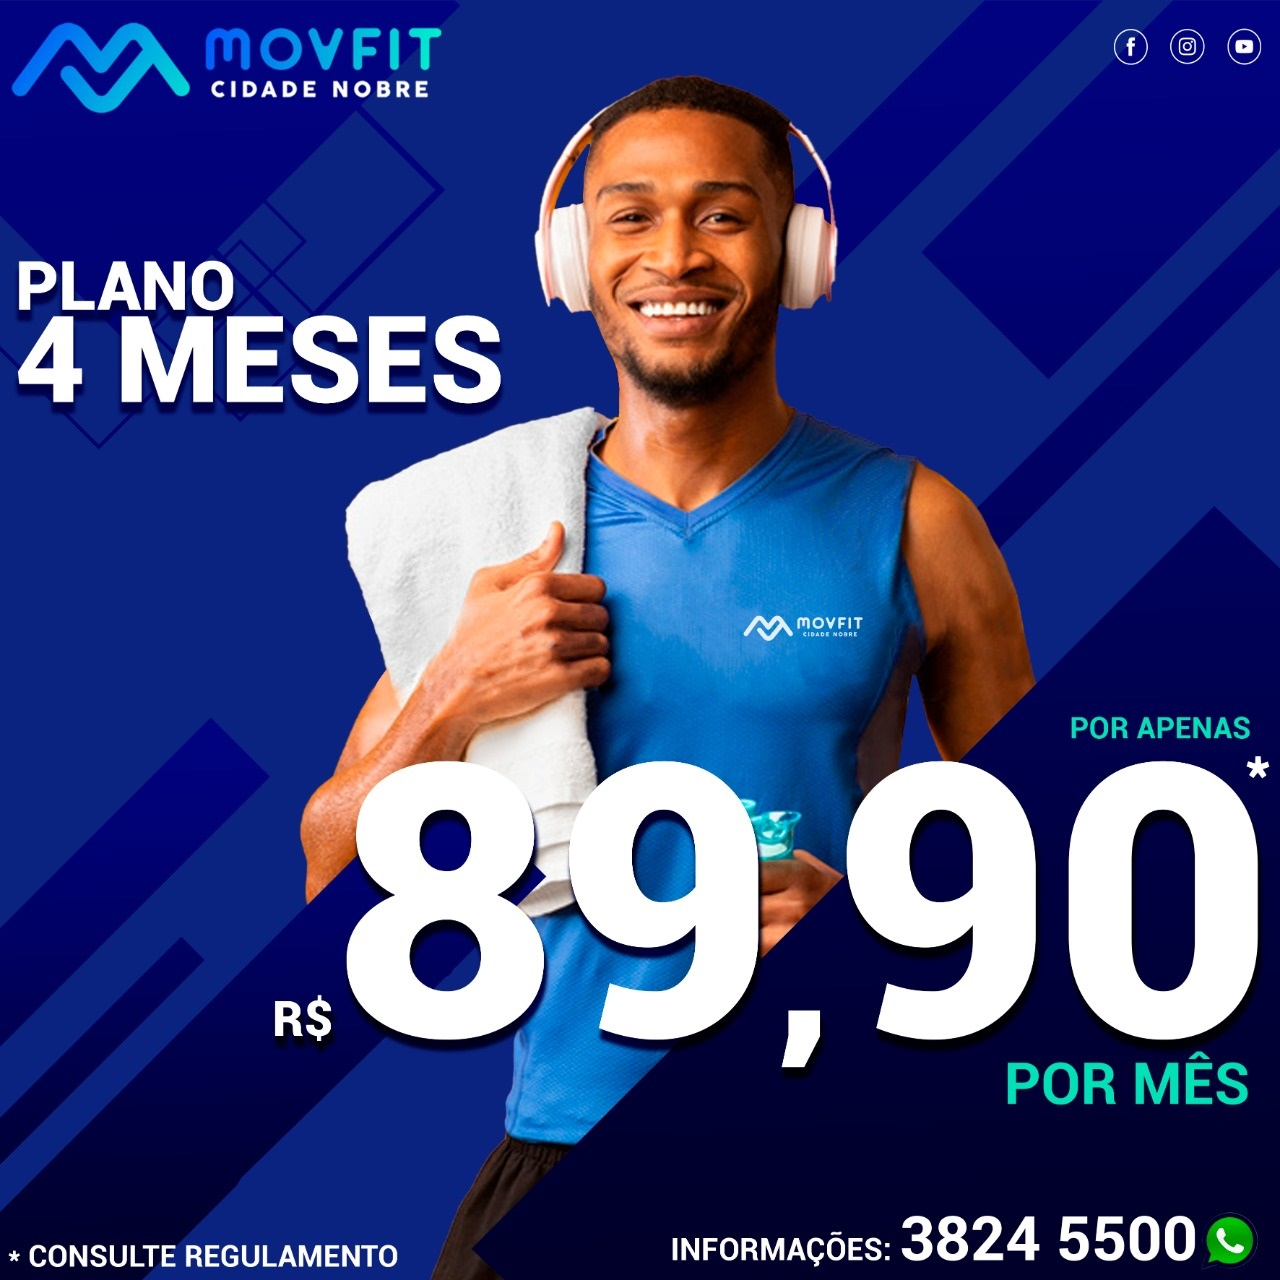 Movfit Plano 4 Meses